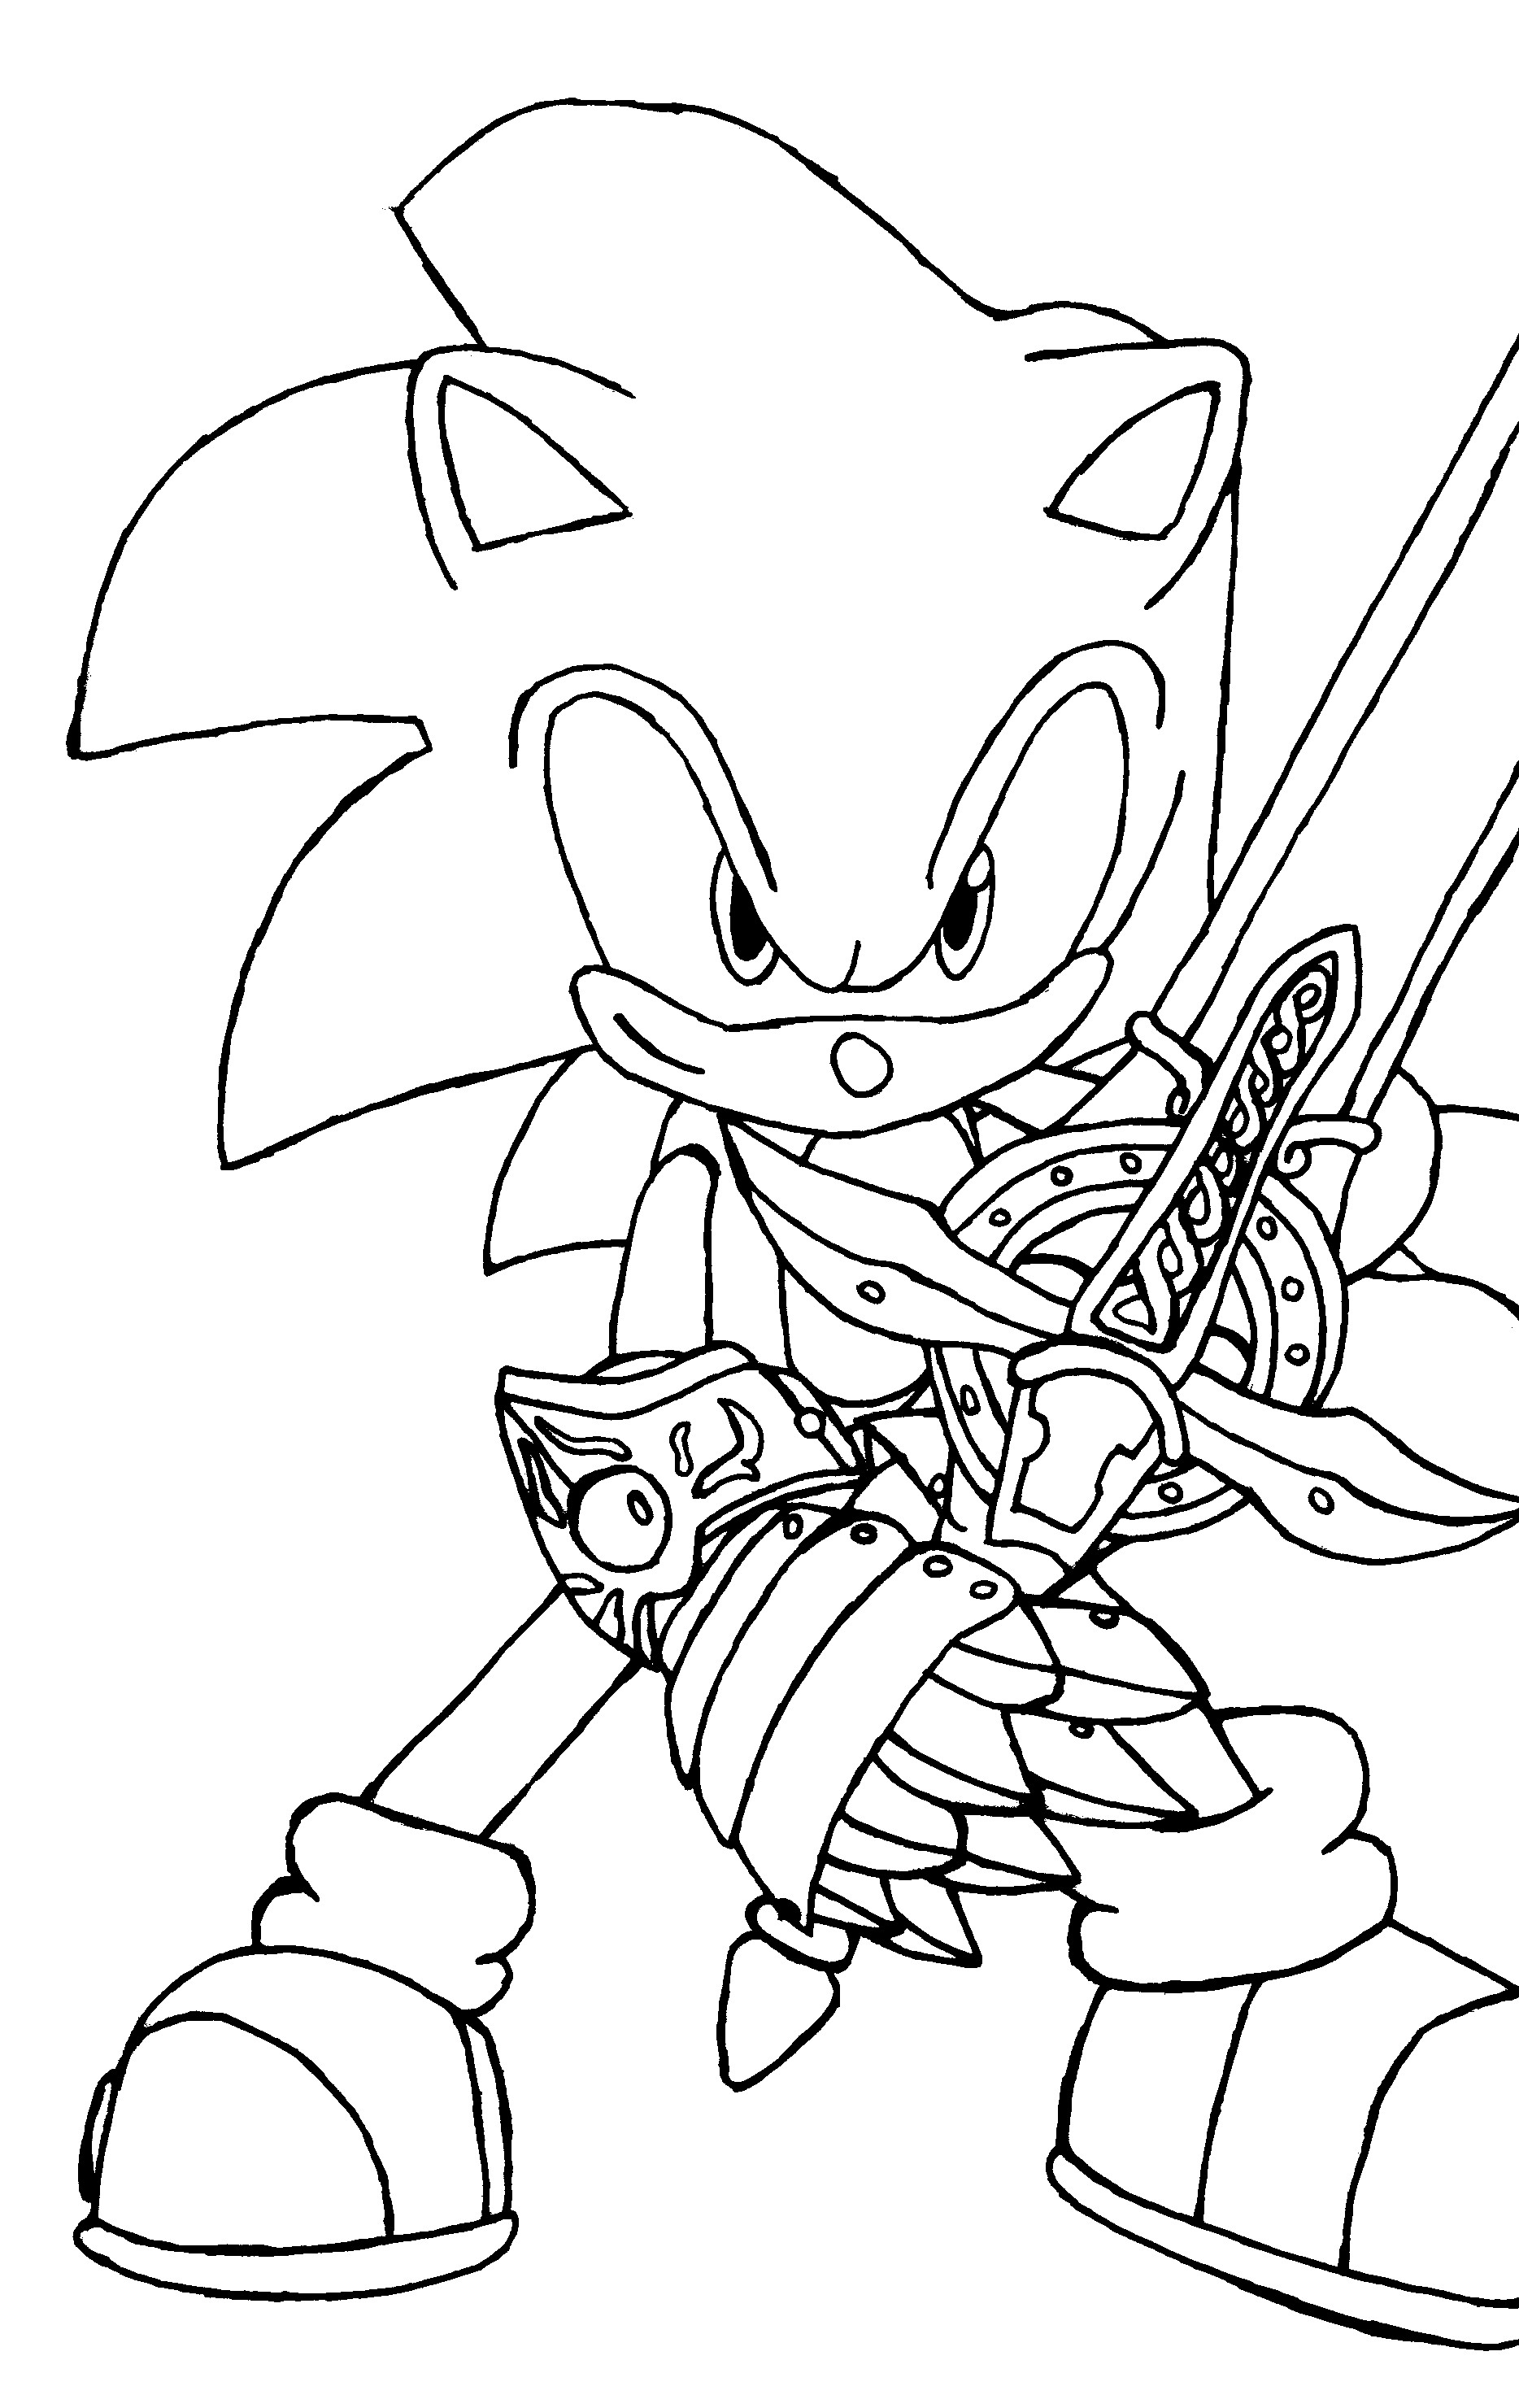 free coloring pages online online coloring pages for adults and other themed coloring coloring online free pages